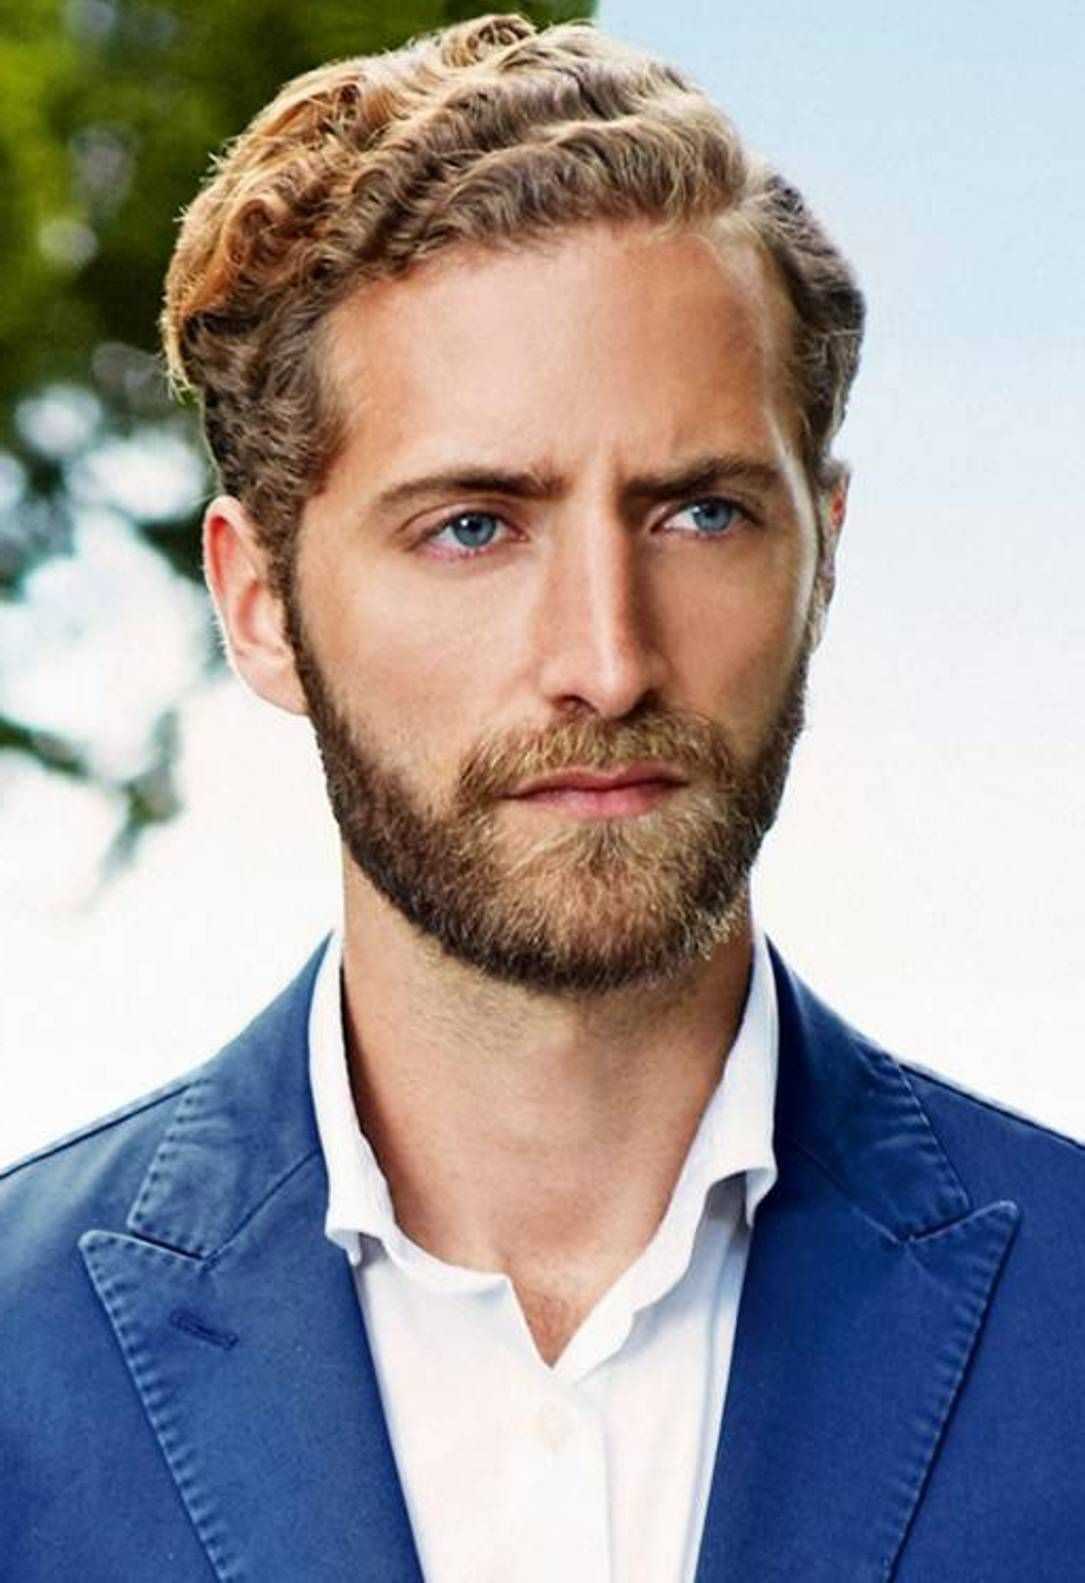 Awe Inspiring Hair Style For Men Curly Hair Styles And Style For Men On Pinterest Short Hairstyles Gunalazisus